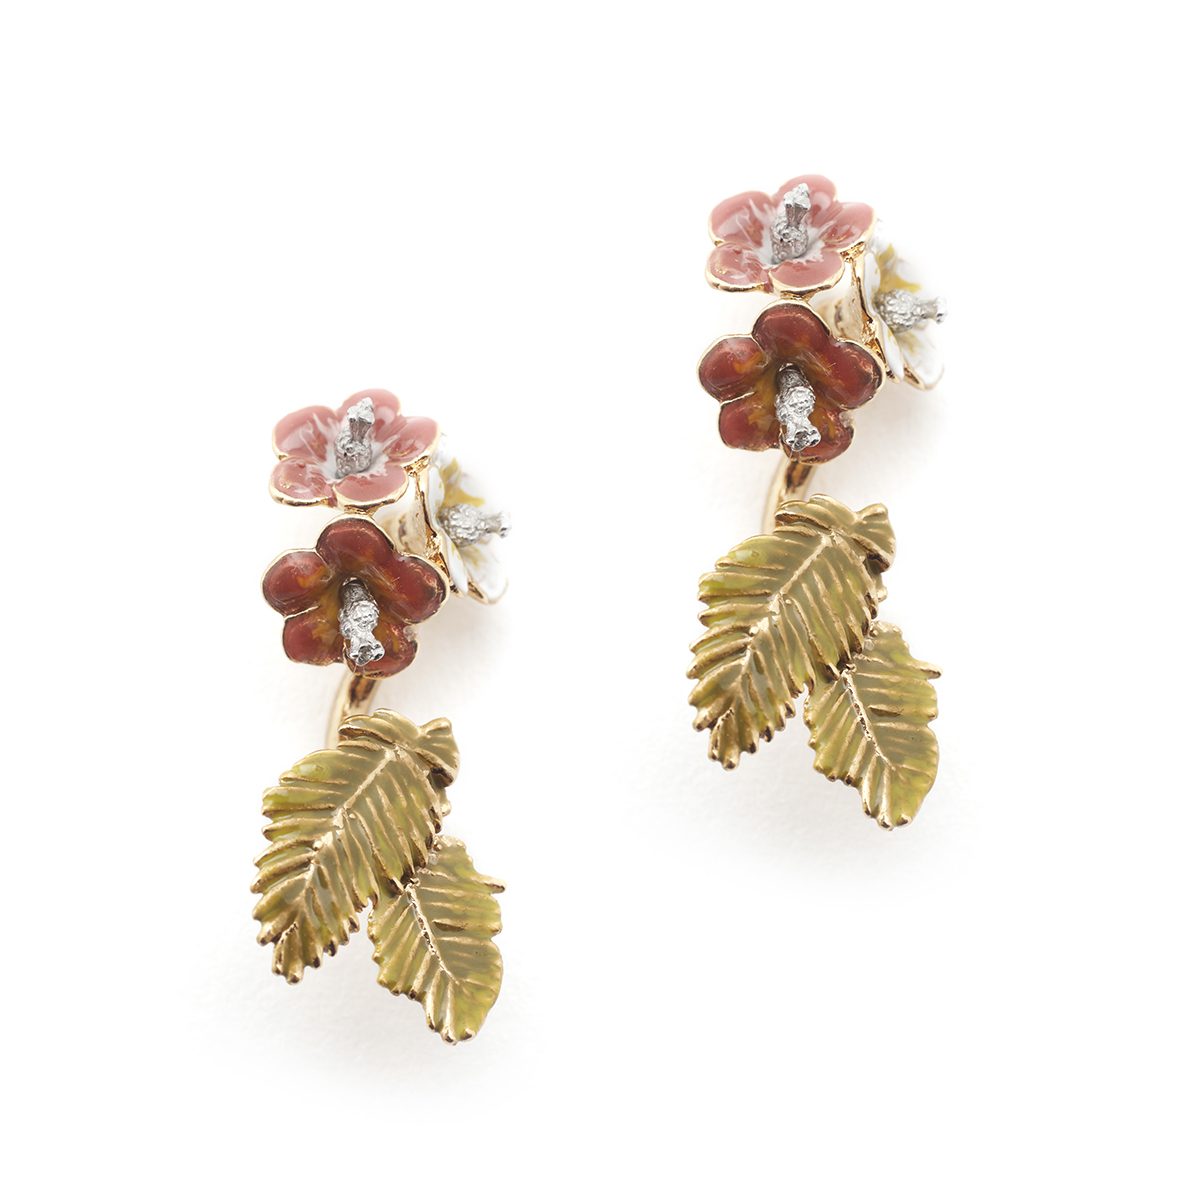 Tropical Through & Through Earrings